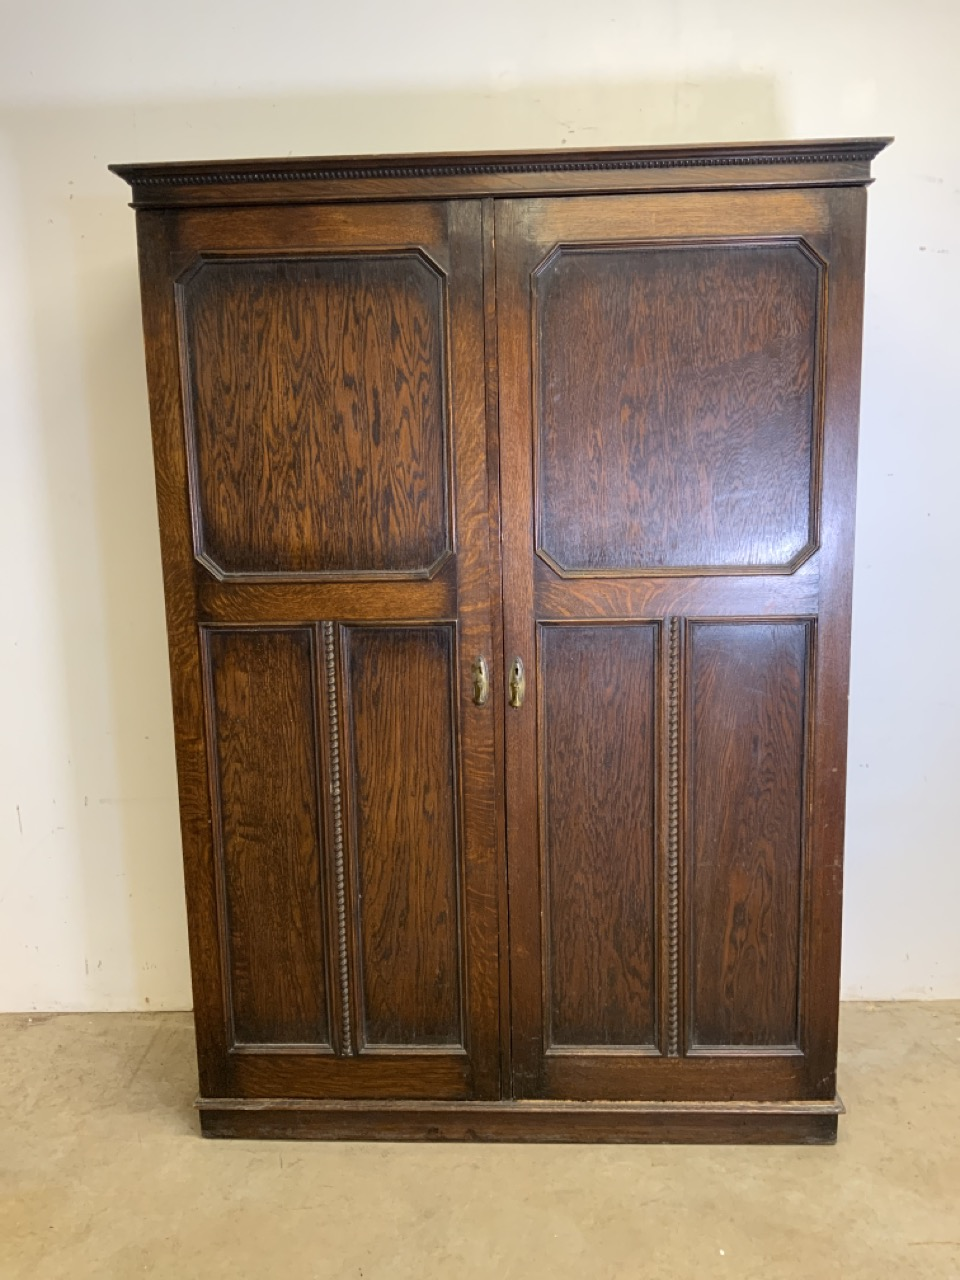 An early 20th century gentleman's oak double wardrobe by Awlyn furniture with fitted shelves,